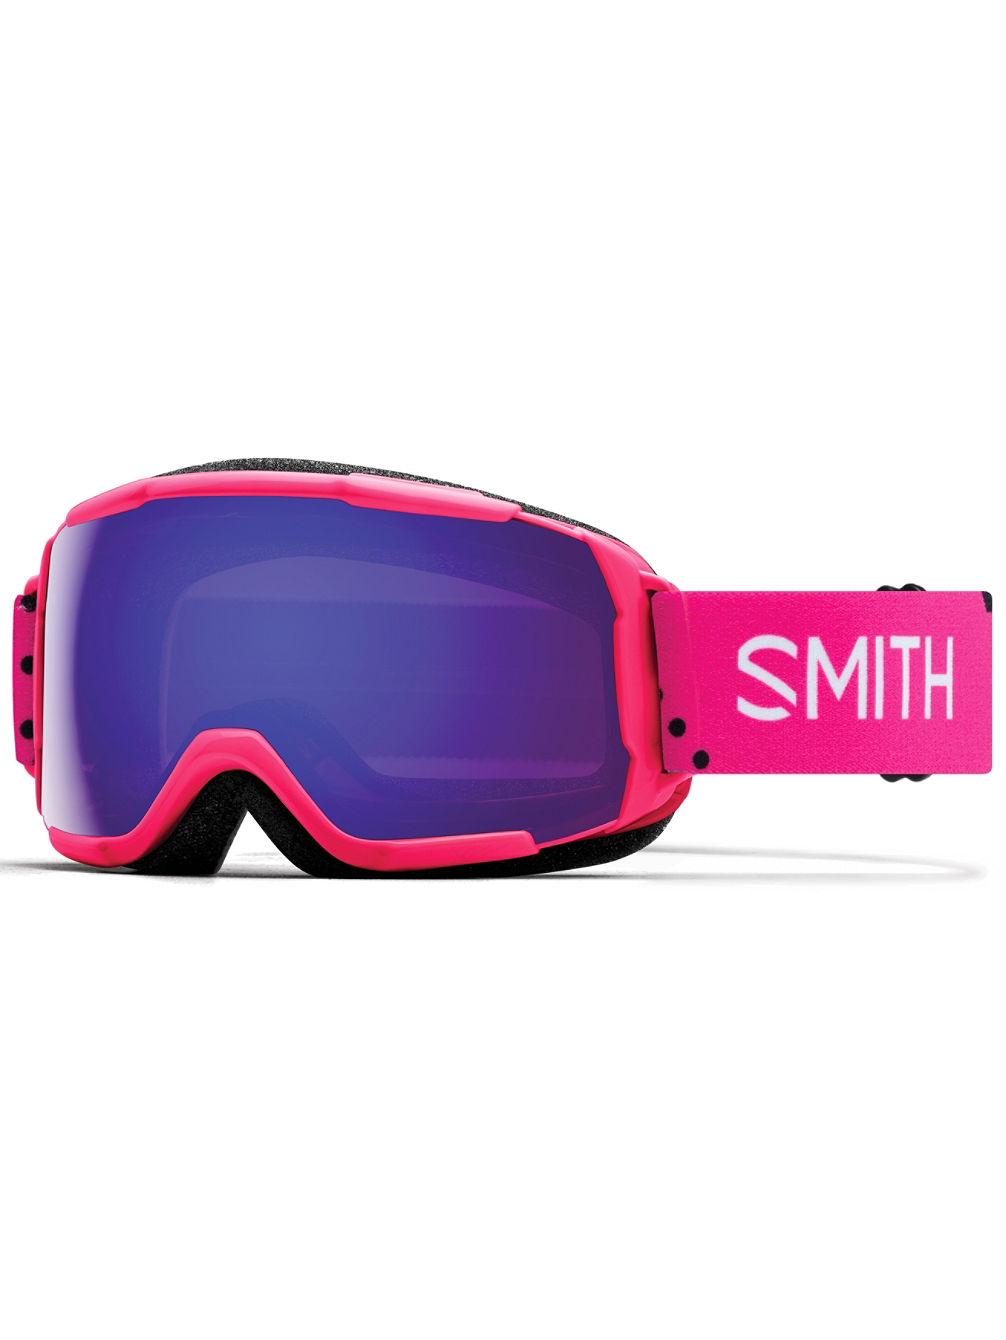 Grom Pink Monaco Youth